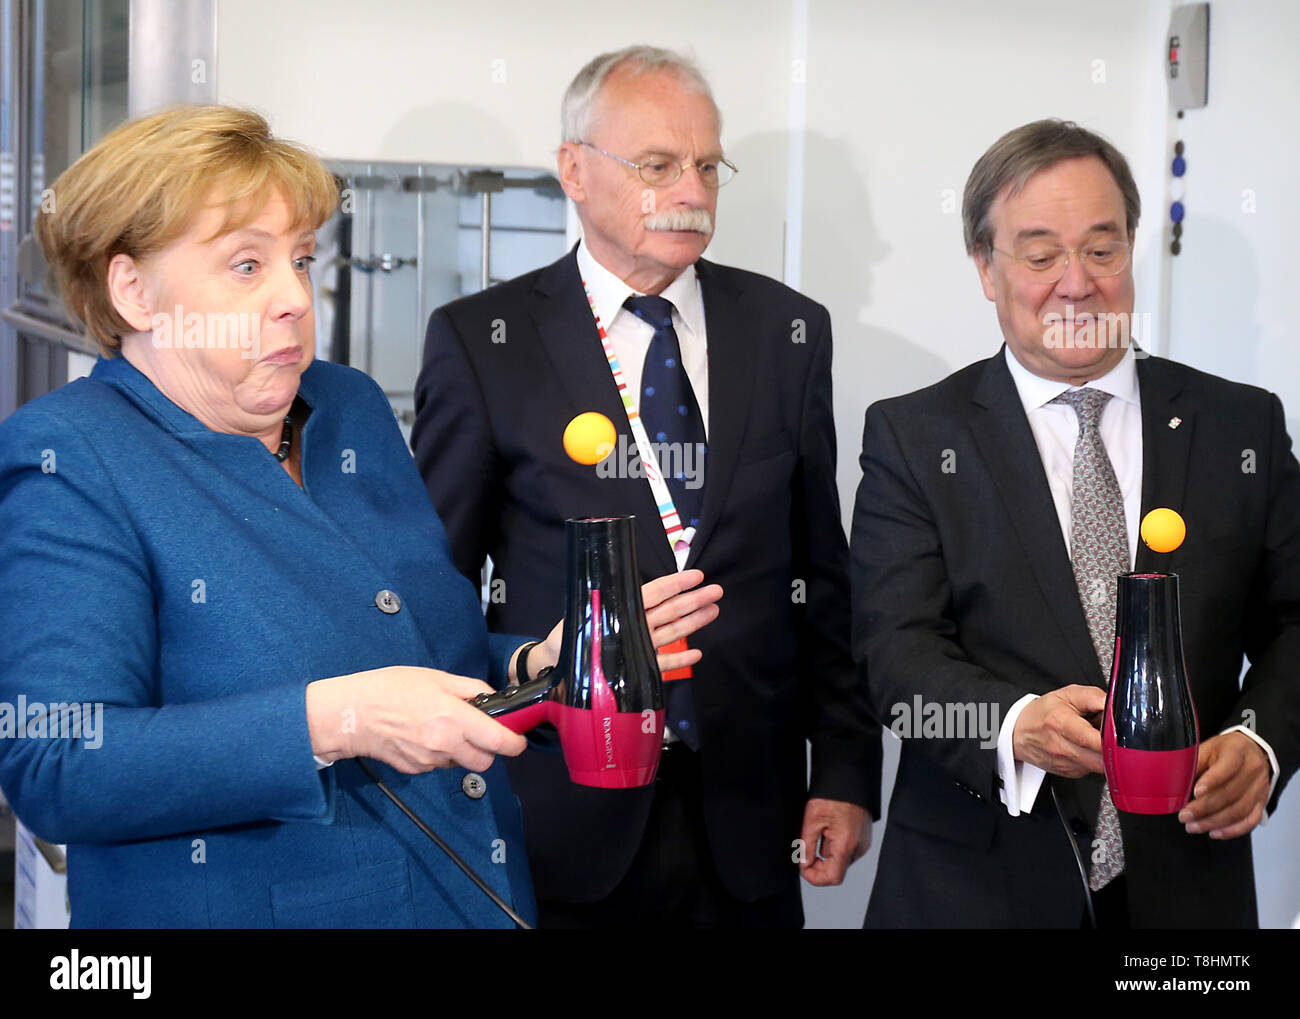 Wuppertal, Germany. 09th May, 2019. Federal Chancellor Angela Merkel (l, CDU), Armin Laschet, Prime Minister of North Rhine-Westphalia(r, CDU), and the founder of the Junior University Ernst-Andreas Ziegler (M) do an experiment on the Bernoulli effect and juggle a table tennis ball on a hairdryer. The Wuppertal Junior University is a nationwide unique extracurricular educational and research institution for 4 to 20 year olds. Credit: Oliver Berg/dpa/Alamy Live News - Stock Image